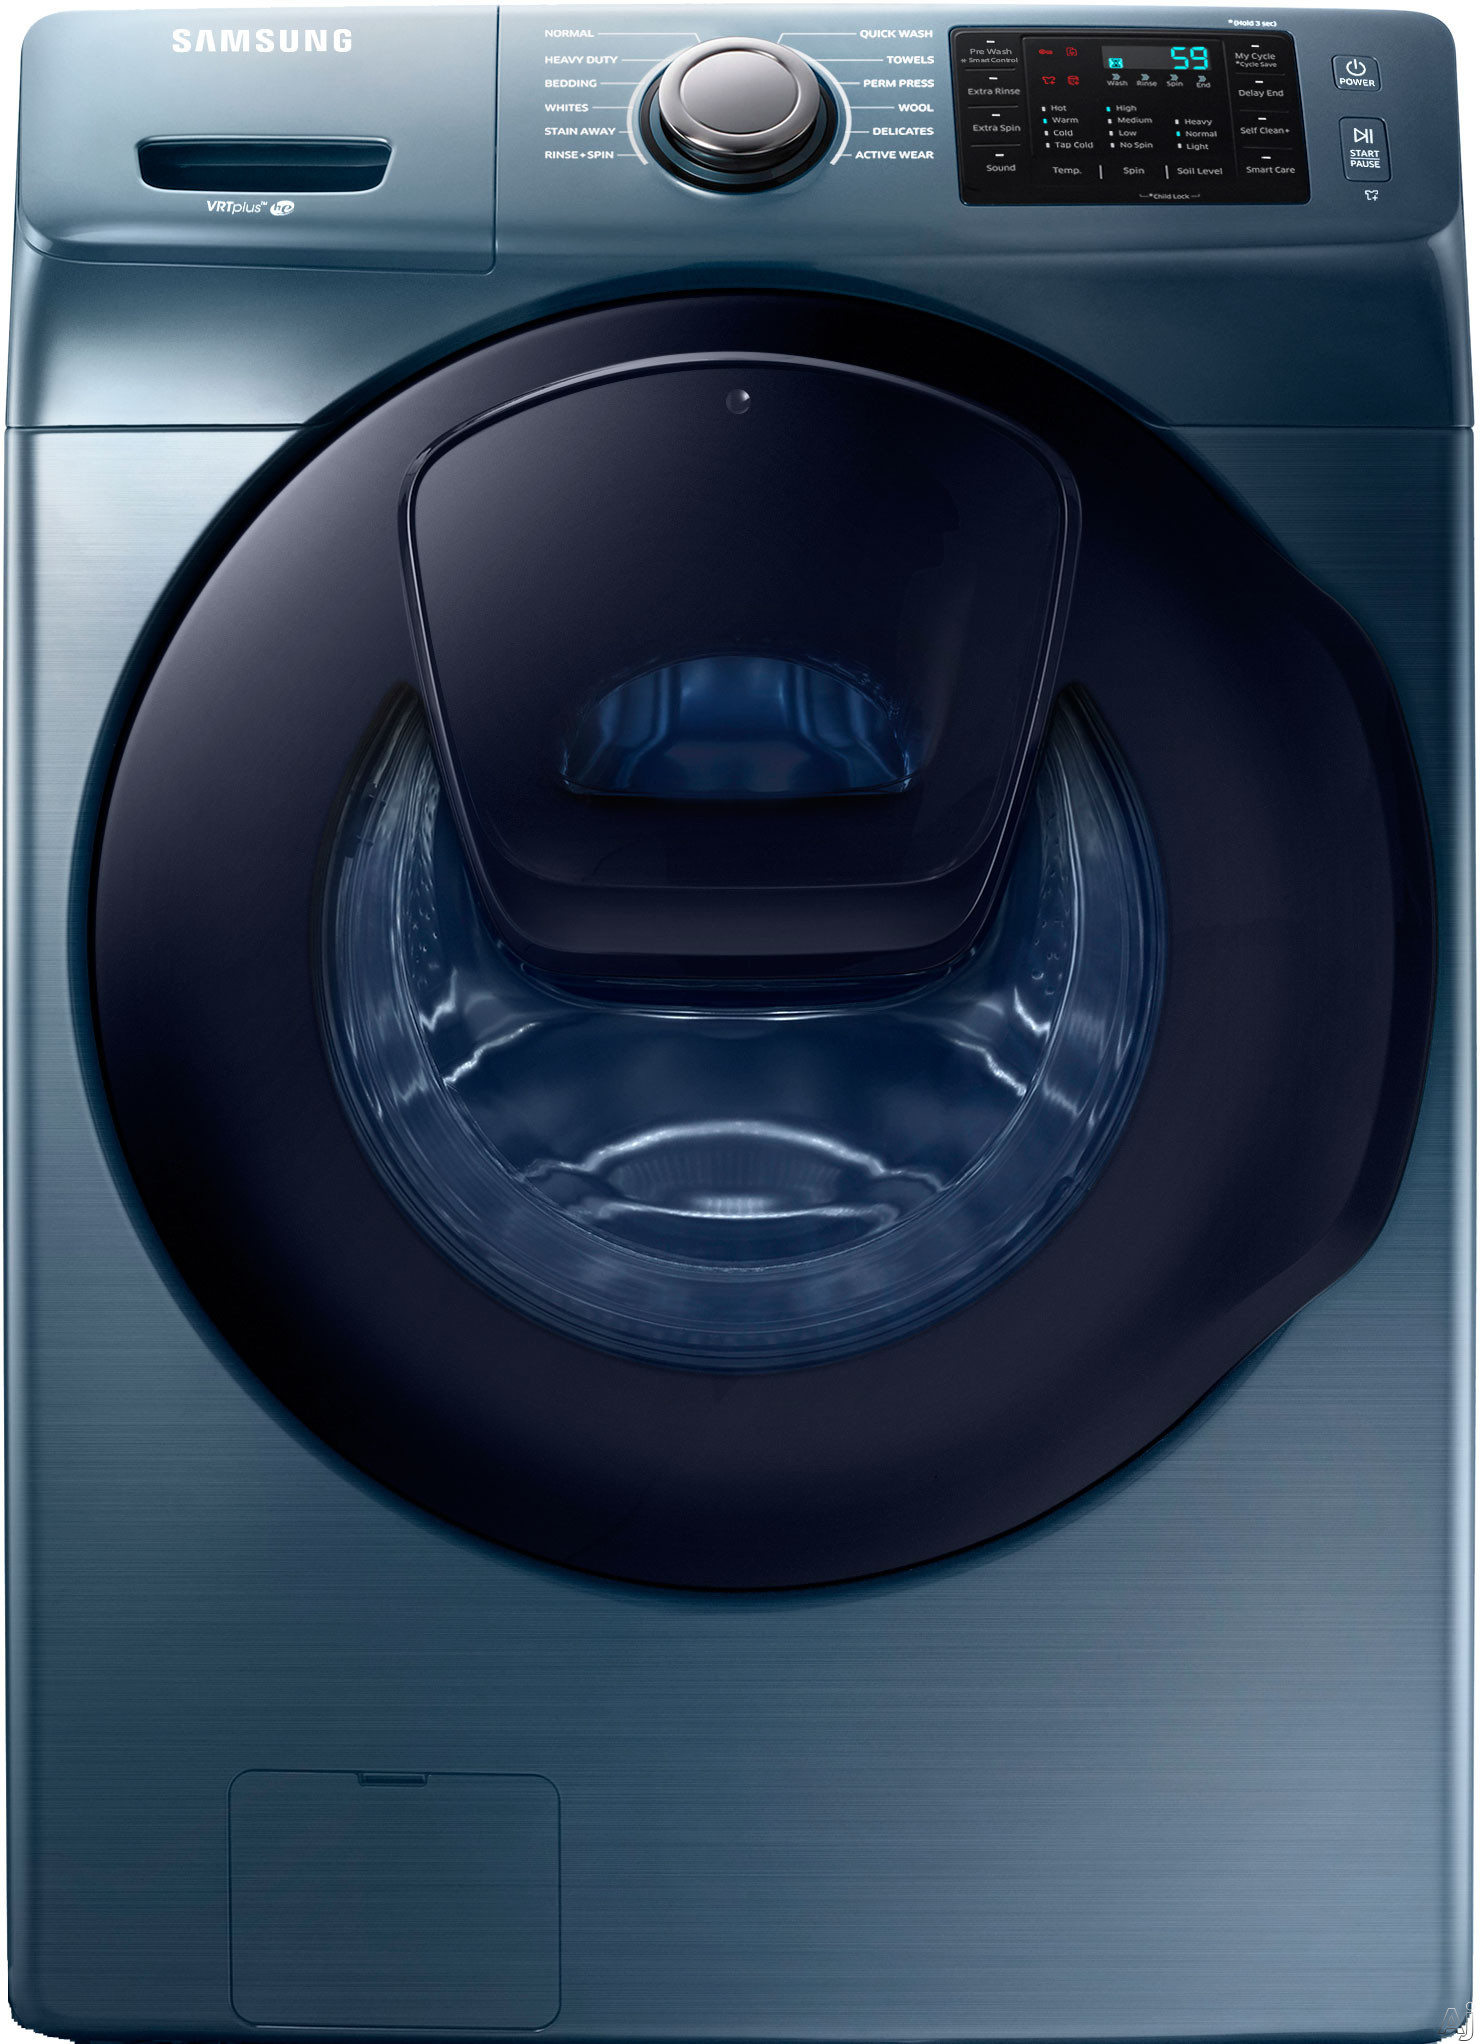 Samsung WF45K6200A 27 Inch 4.5 cu. ft. Front Load Washer with AddWash, 12 Preset Wash Cycles, 10 Wash Options, 1,300 RPM, Smart Care, Vibration Reduction Plus, Self Clean Plus and ENERGY STAR Certification WF45K6200A